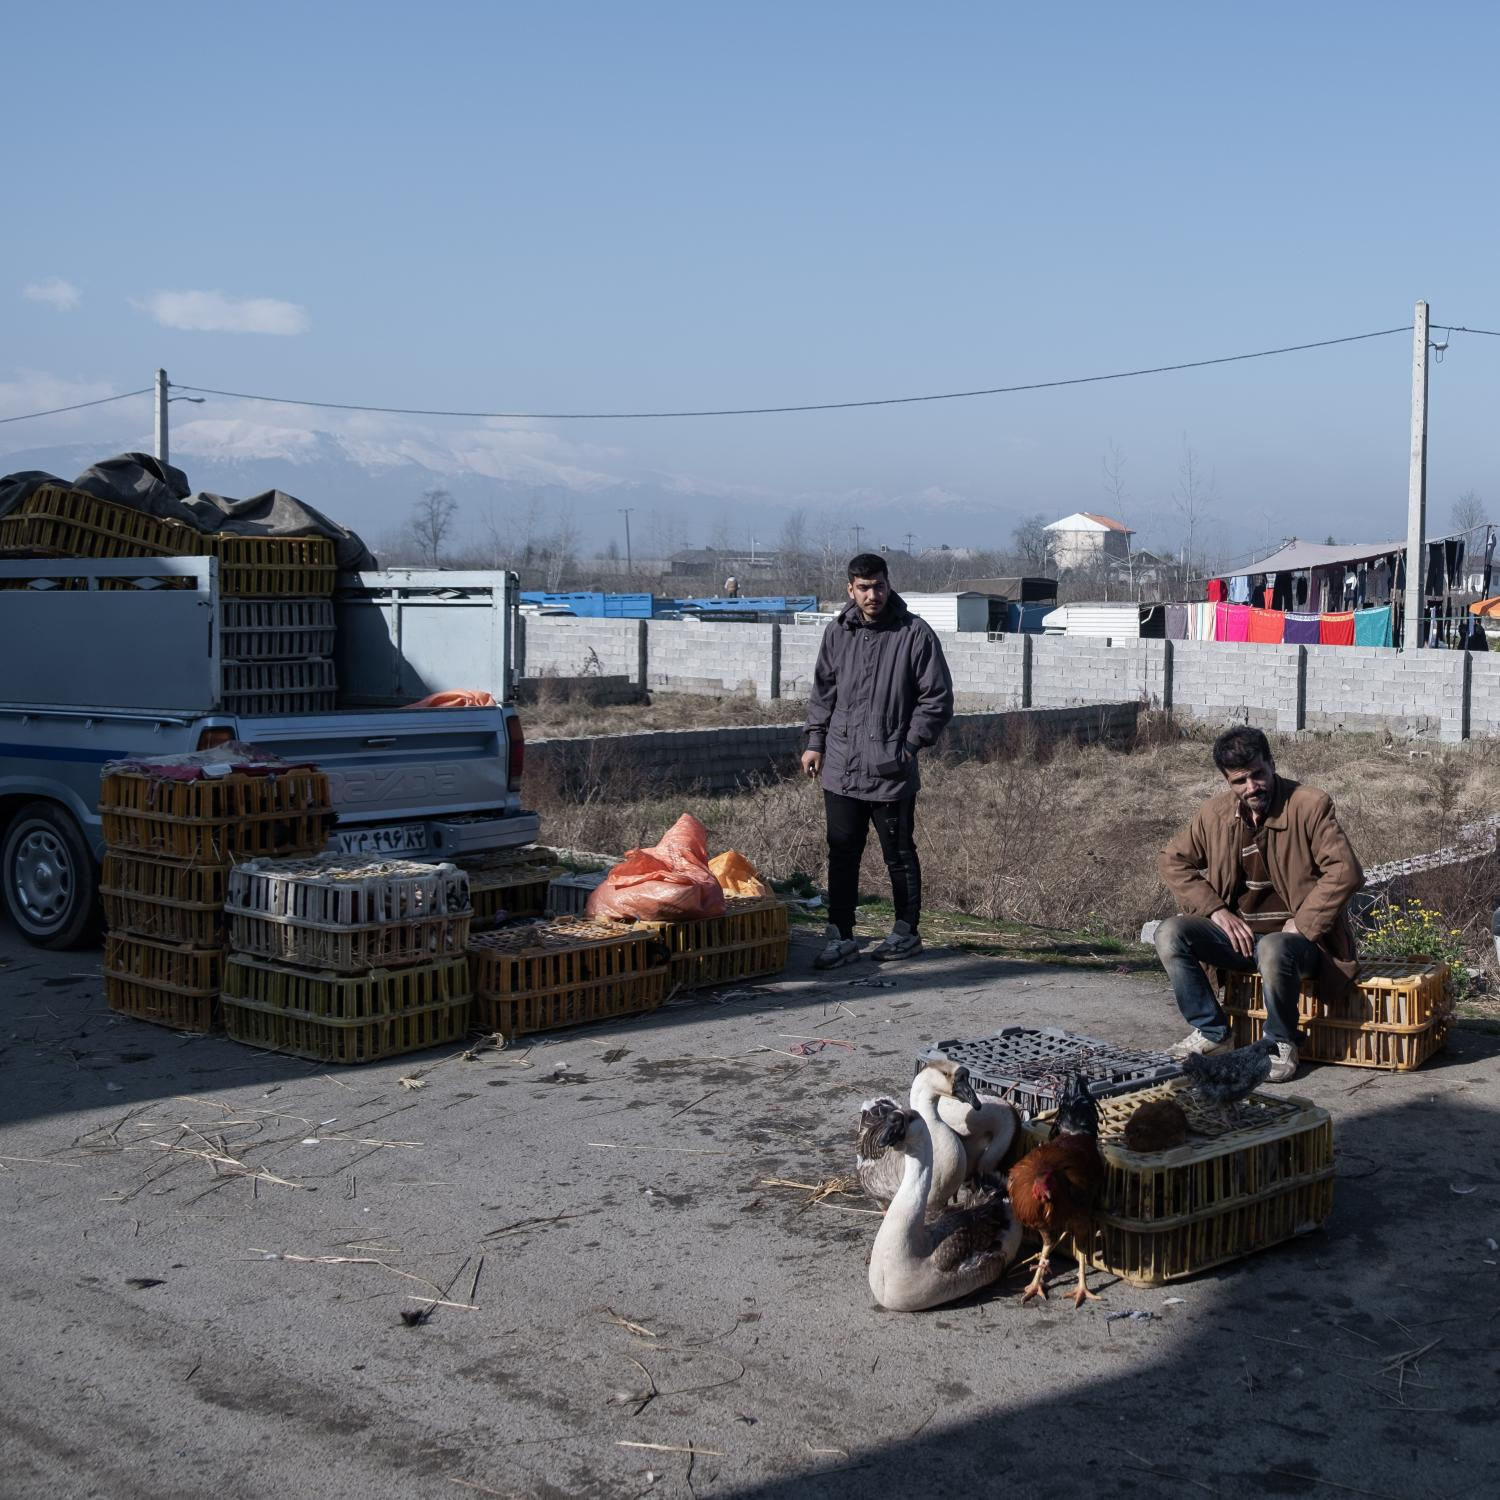 A large number of people and especially Gilan province youth are working in the weekly markets to make a living and earn money. A variety of food, industrial, clothing, leek, nuts, birds, and fish products are supplied in the local markets.